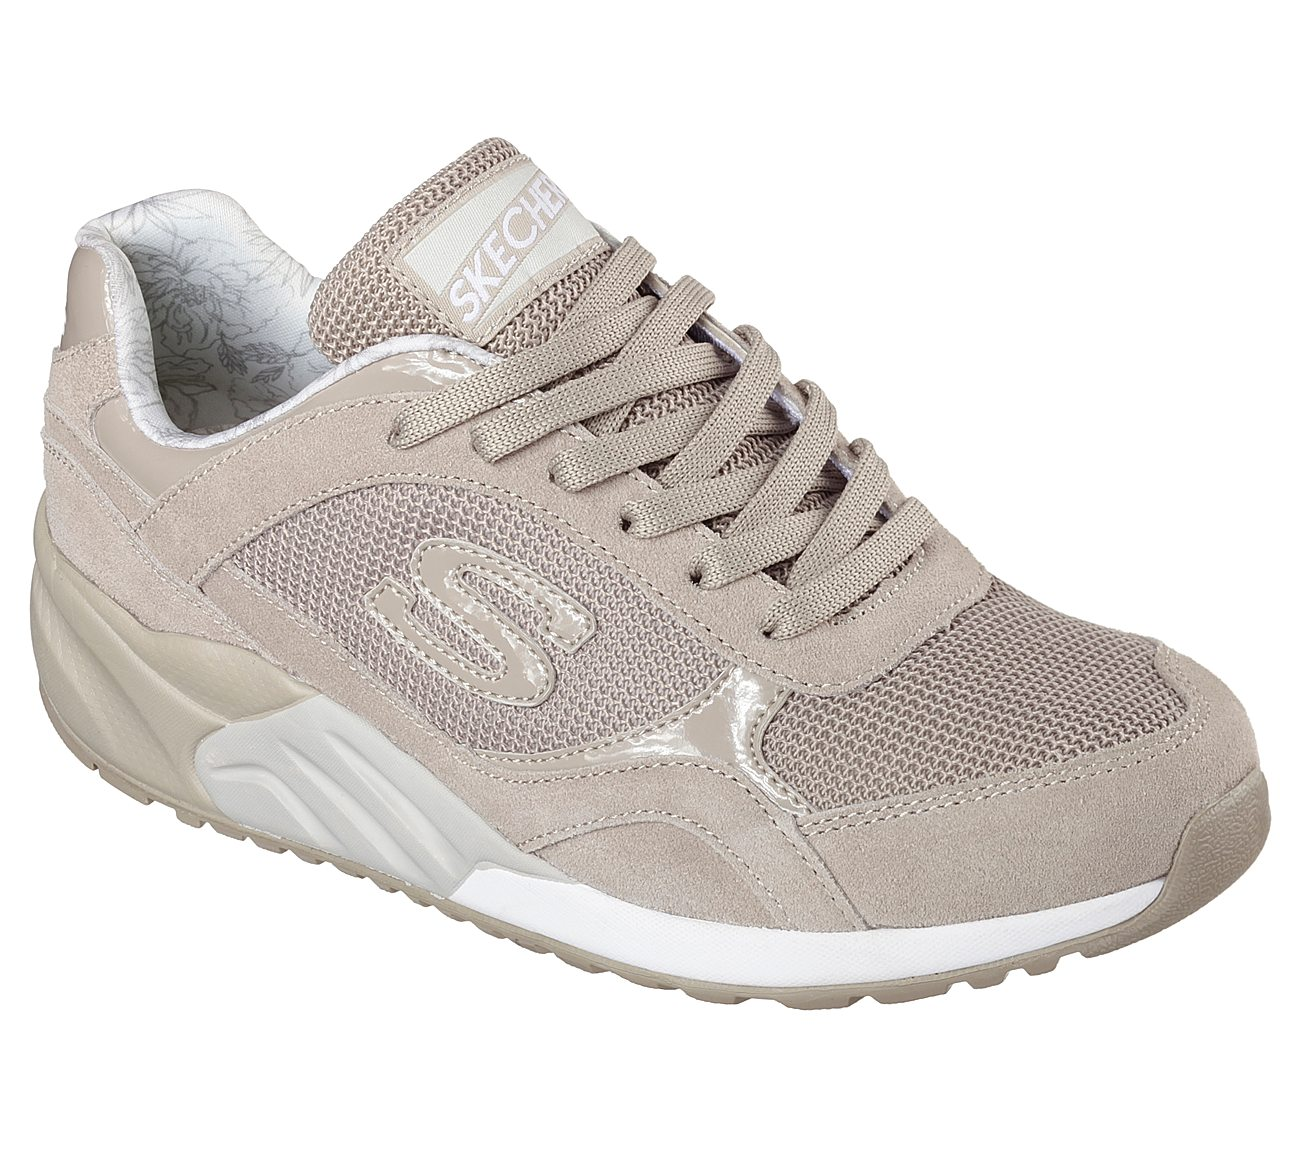 359e178441b Buy SKECHERS OG 95 - Great Heights Originals Shoes only  70.00